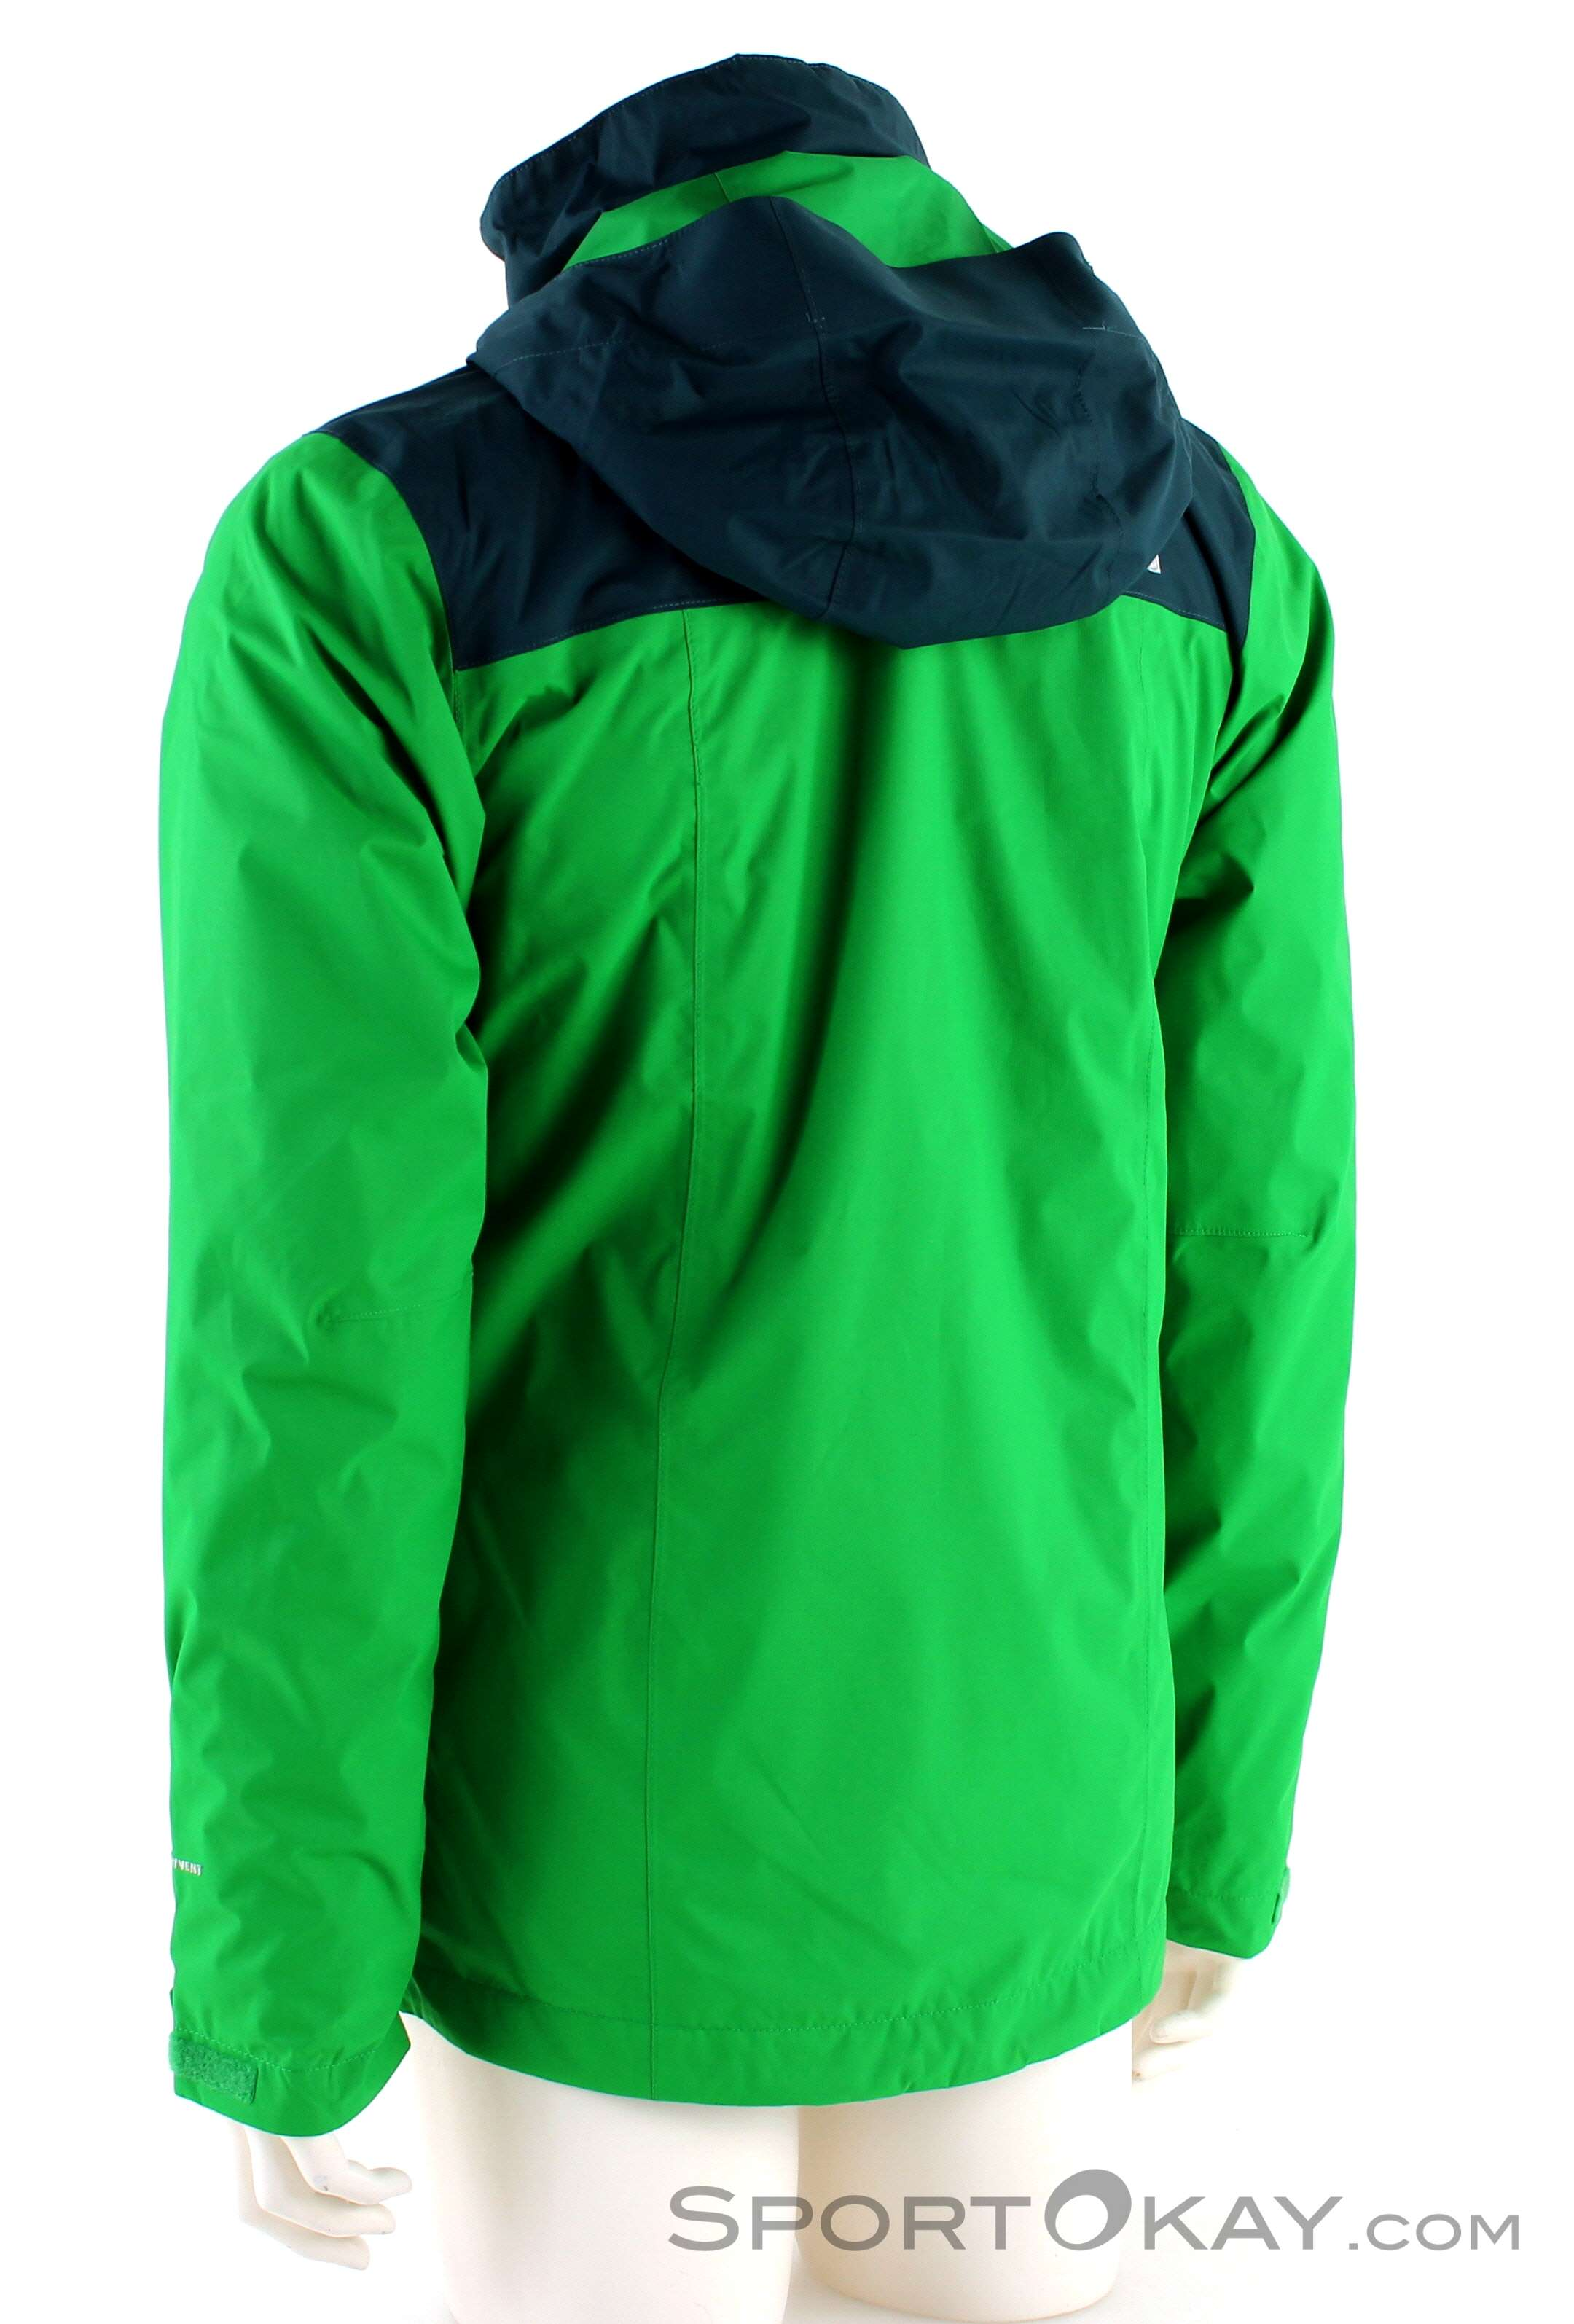 4b2c6de111c623 The North Face Evolve II Triclimate Mens Outdoor Jacket, The North Face,  Green,